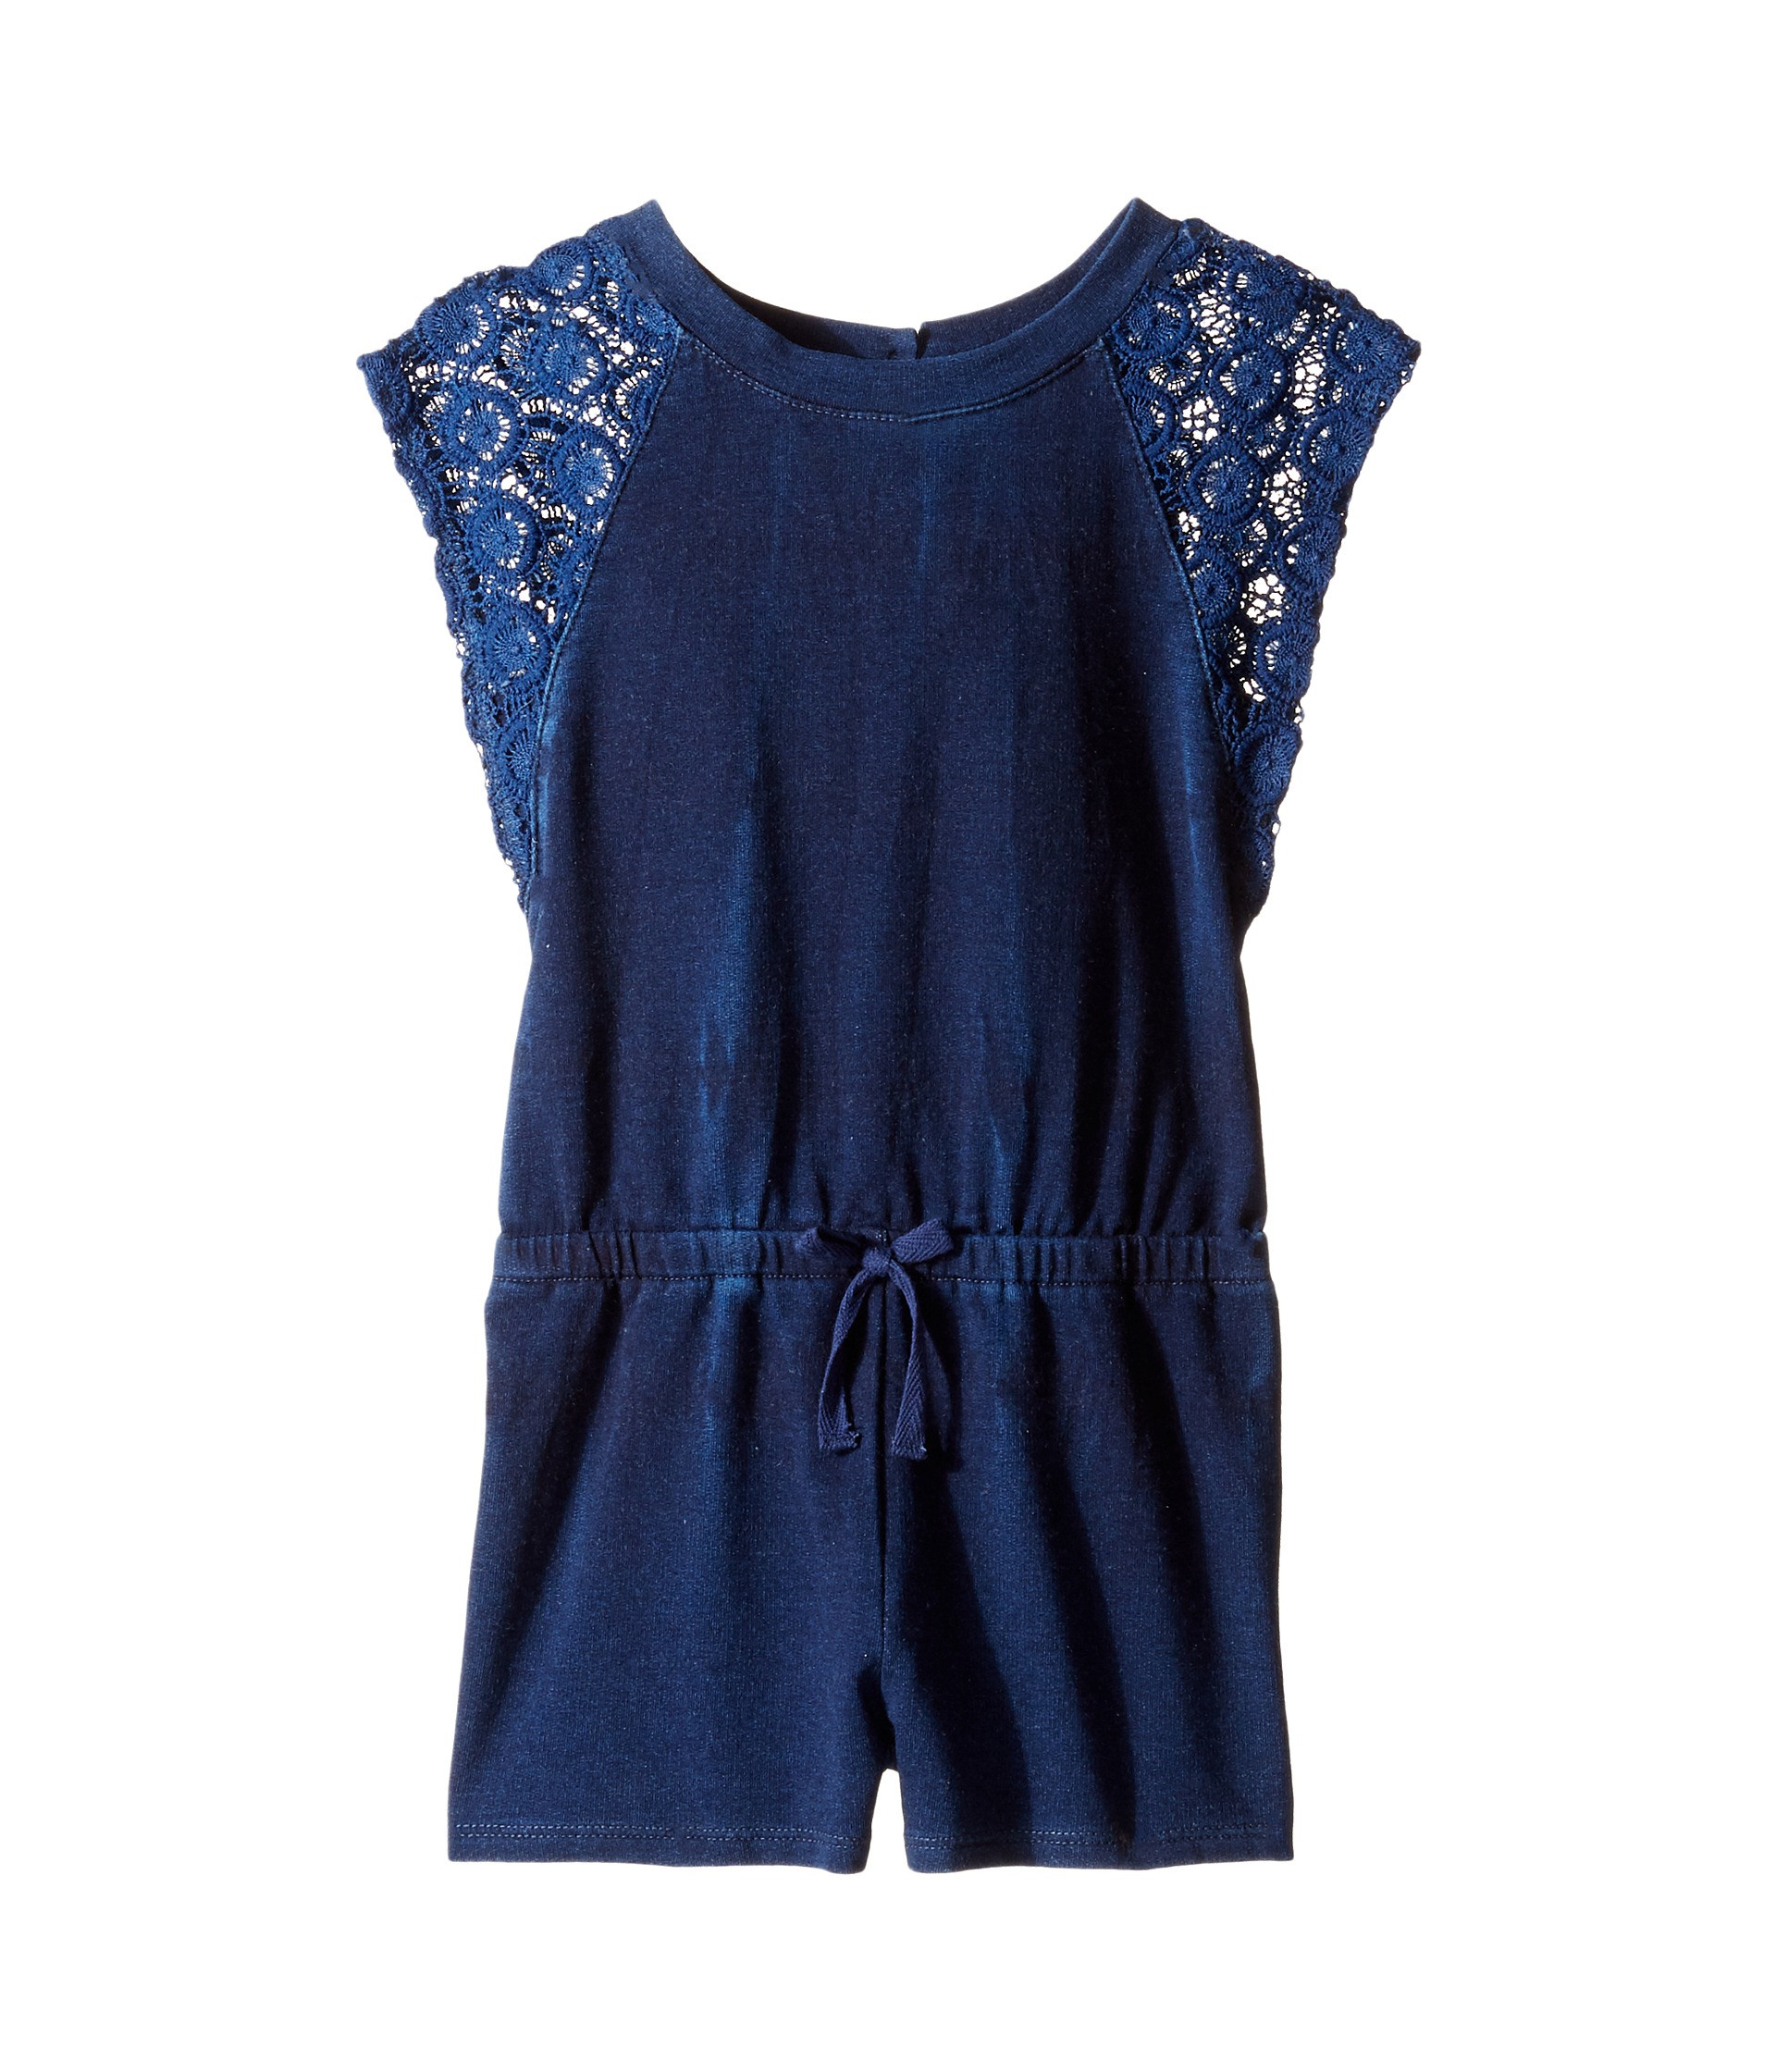 Splendid Littles Indigo Baby French Terry Romper w Lace